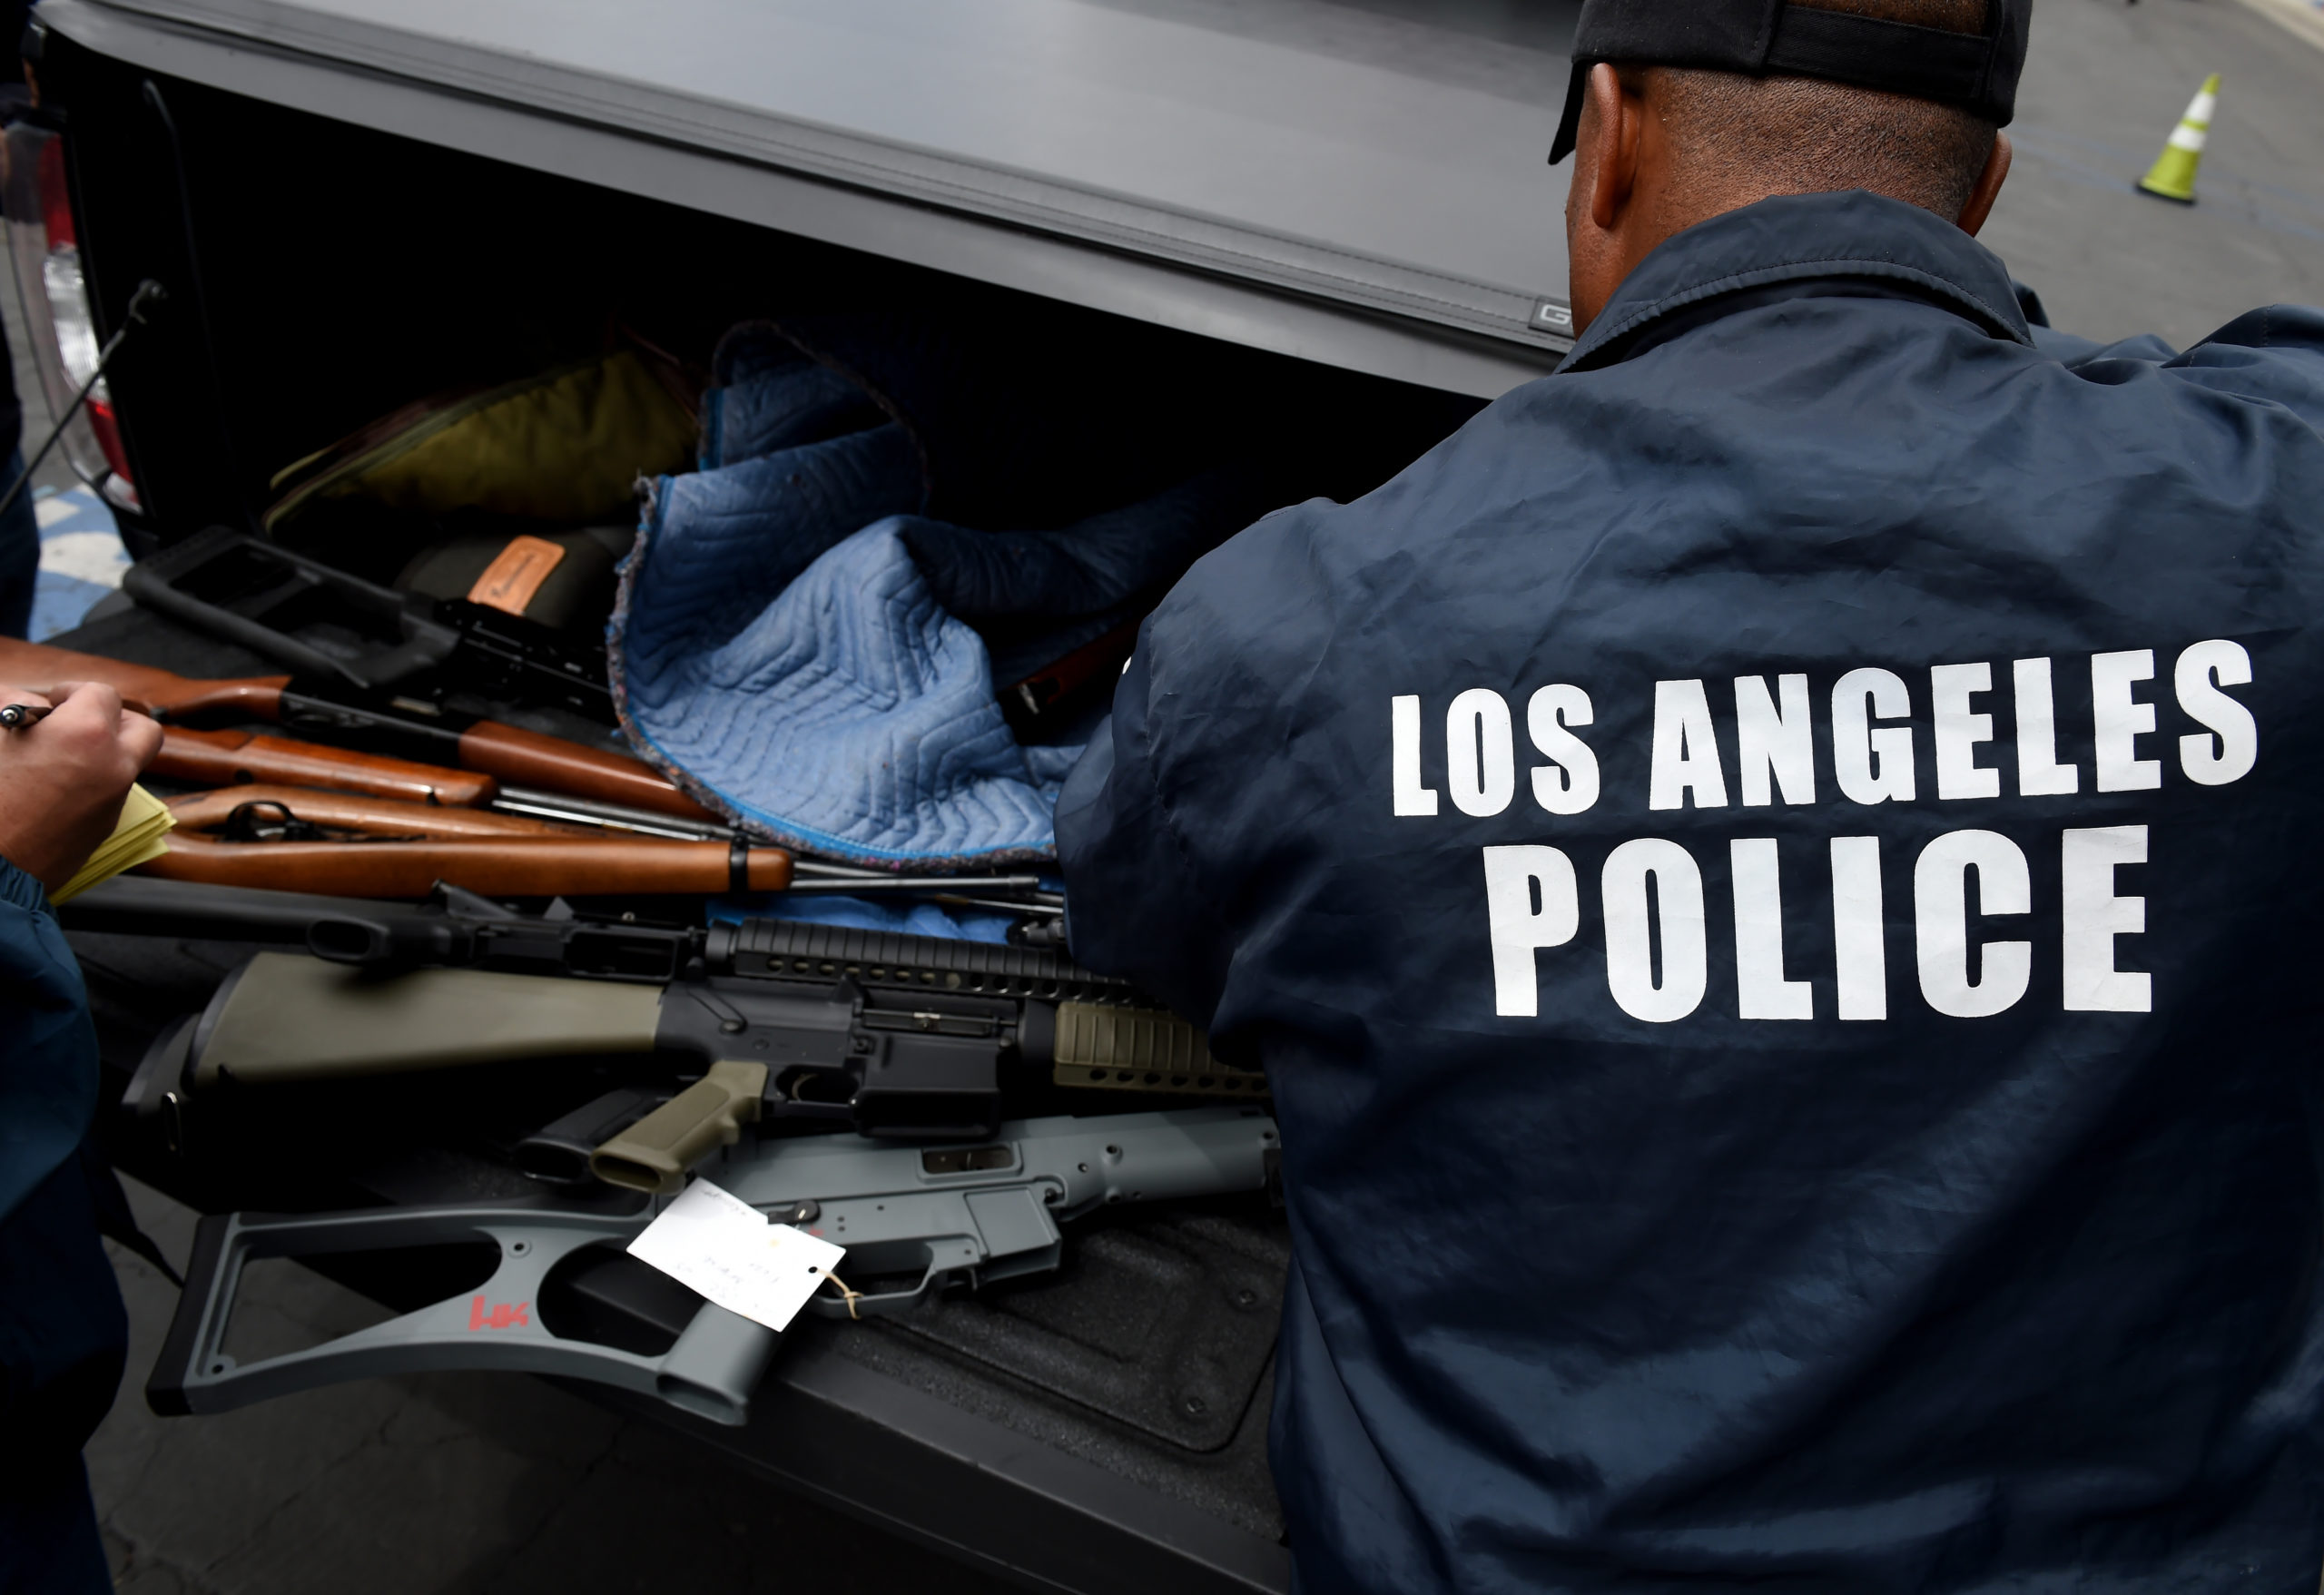 Rifles and assault rifles among a batch of thirteen that were exchanged for gift cards are seen during a Los Angeles Police Department and Mayor's Office of Gang Reduction and Youth Development sponsored gun buyback event in Los Angeles, California on May 7, 2016. The city held the event in two locations and the public were able to safely and anonymously surrender firearms in exchange for $100 and $200 gift cards. / AFP PHOTO / Mark Ralston (Photo credit should read MARK RALSTON/AFP via Getty Images)